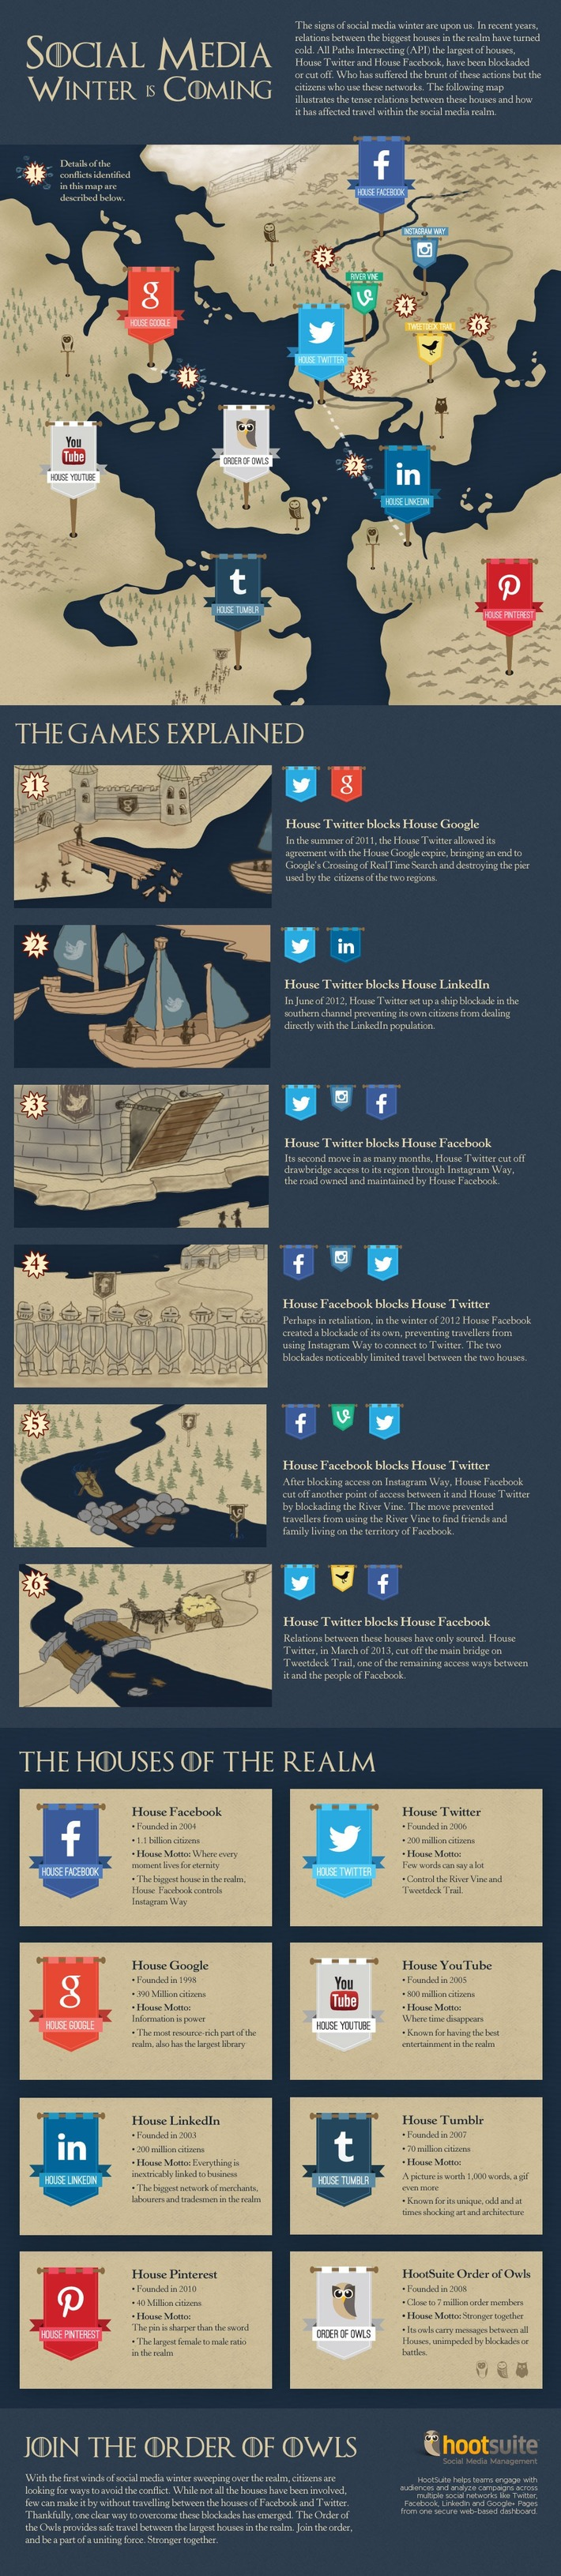 Social Media Wars Told in 'Game of Thrones' Style [INFOGRAPHIC] | Machinimania | Scoop.it